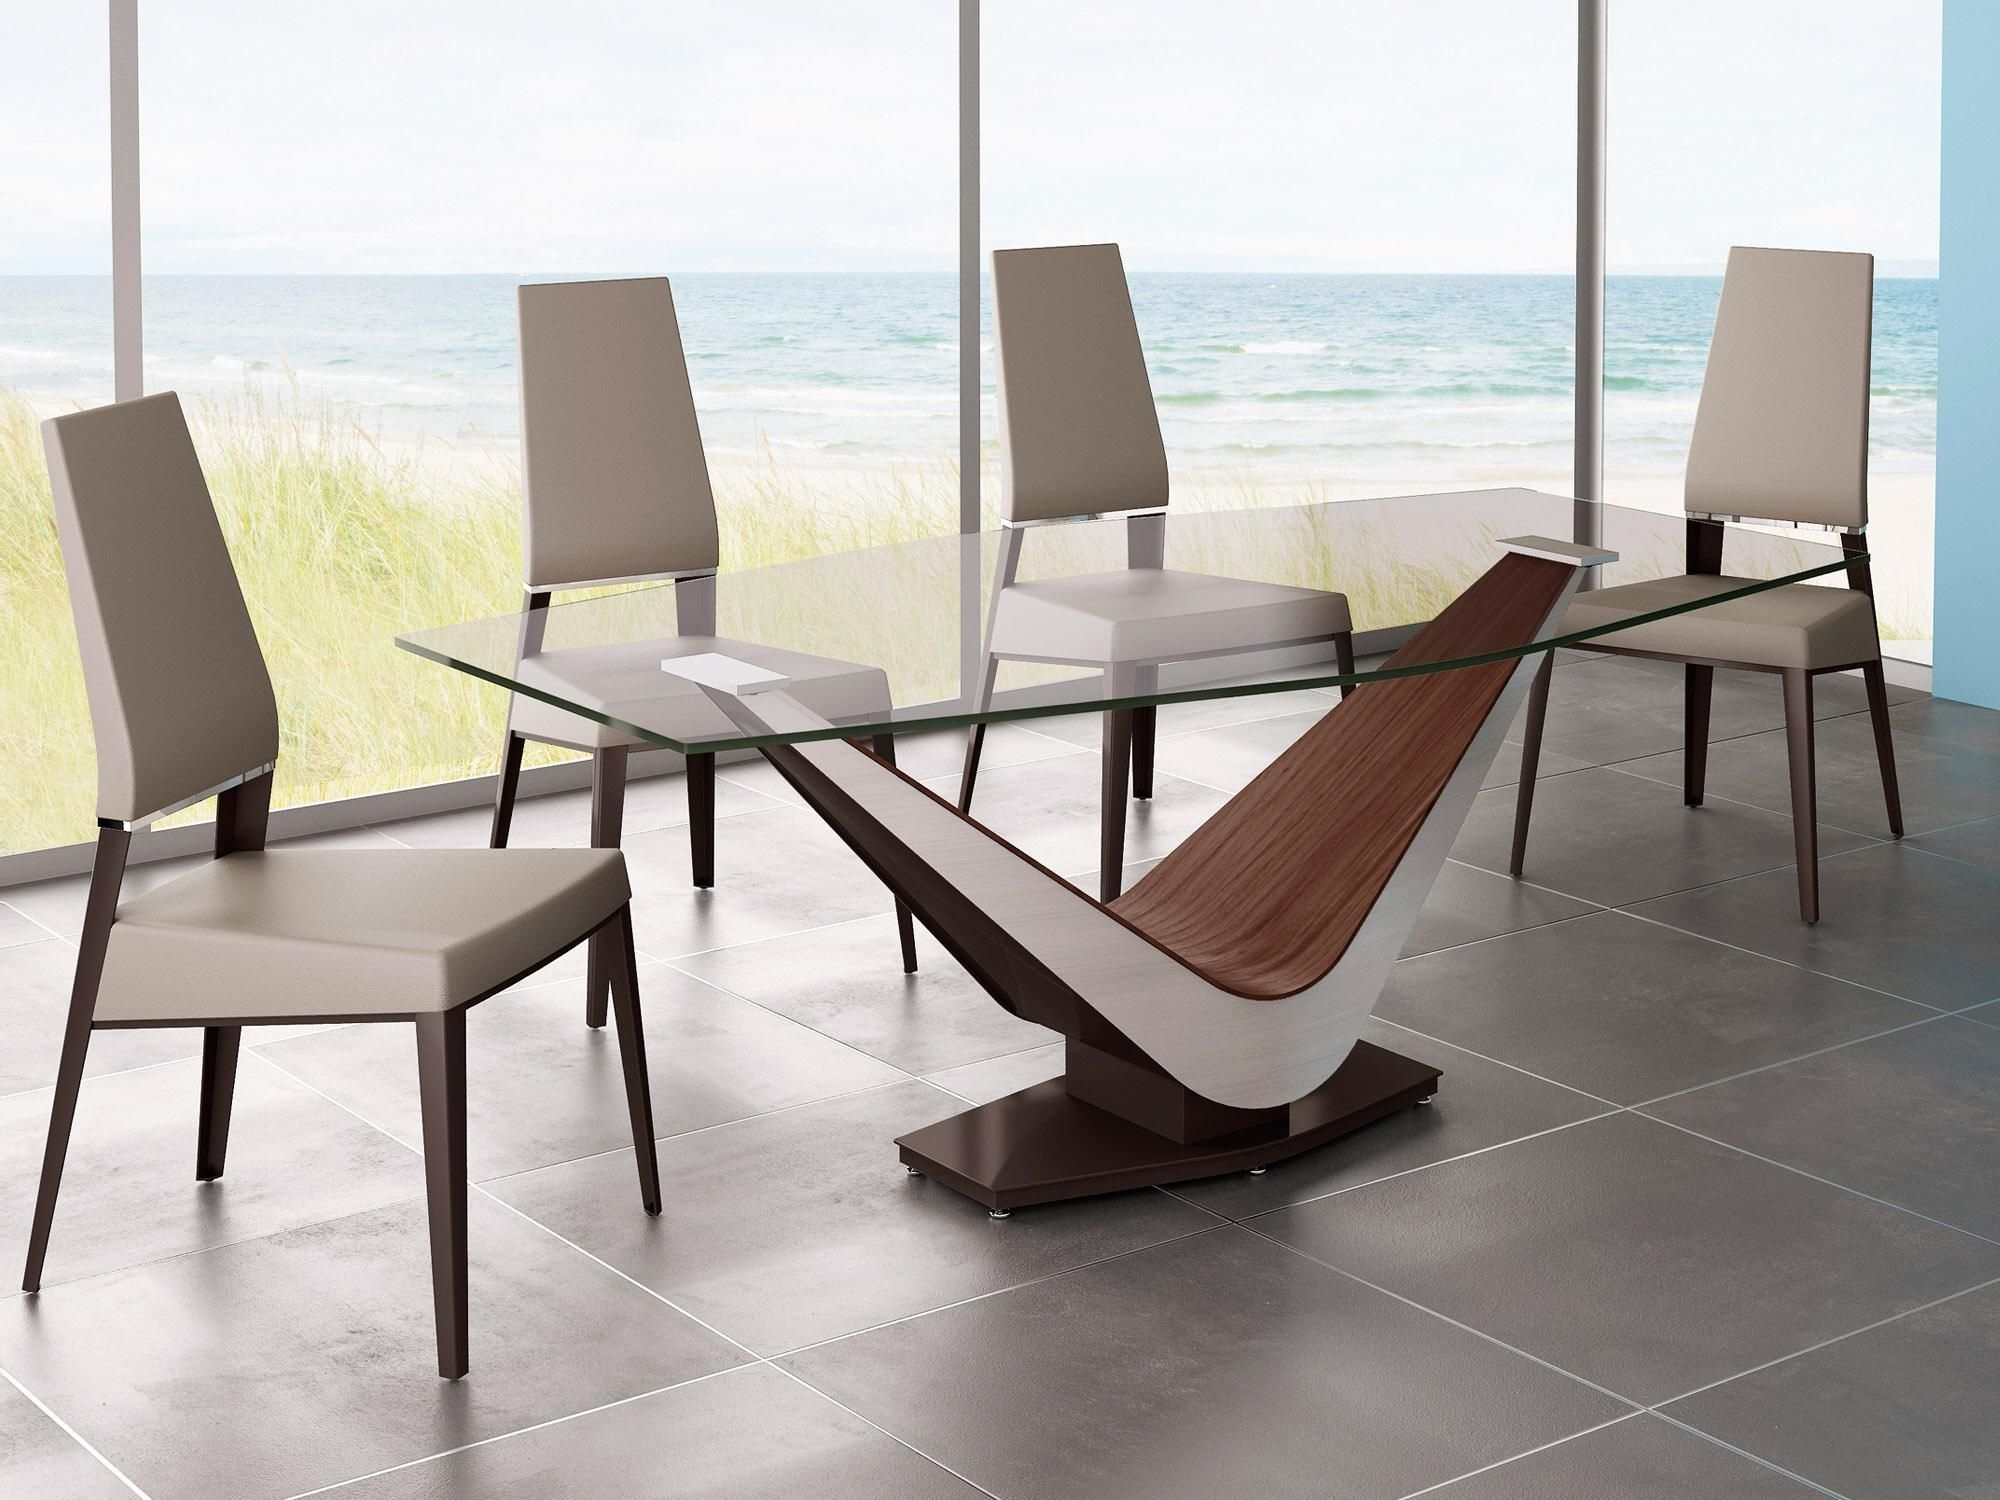 Wood Projects For Most Popular Modern Dining Table And Chairs (View 25 of 25)